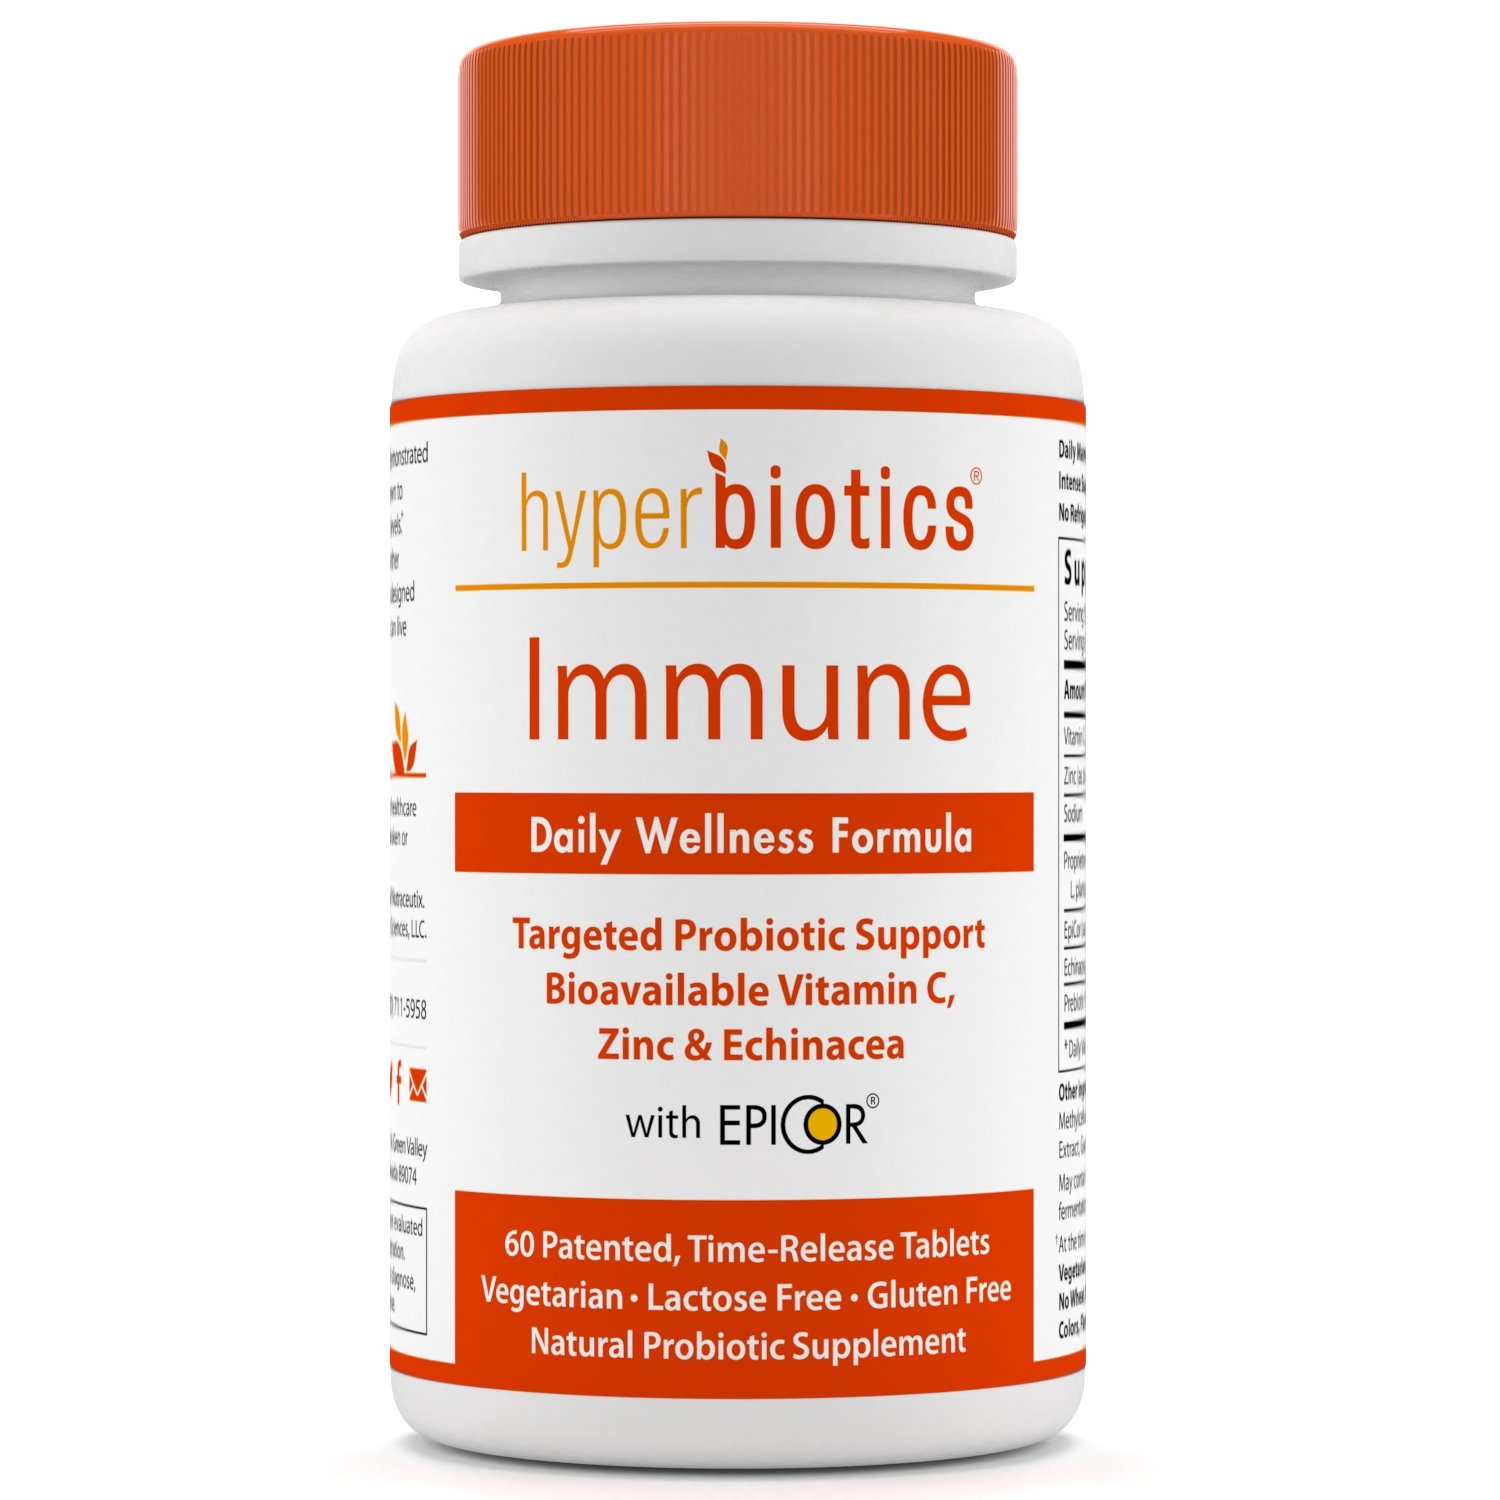 Immune: Hyperbiotics Daily Immune & Wellness Formula - Probiotics with Bioavailable Vitamin C, Zinc, Echinacea & EpiCor (Saccharomyces Cerevisiae) - Time Release Delivery - 30 Day Supply